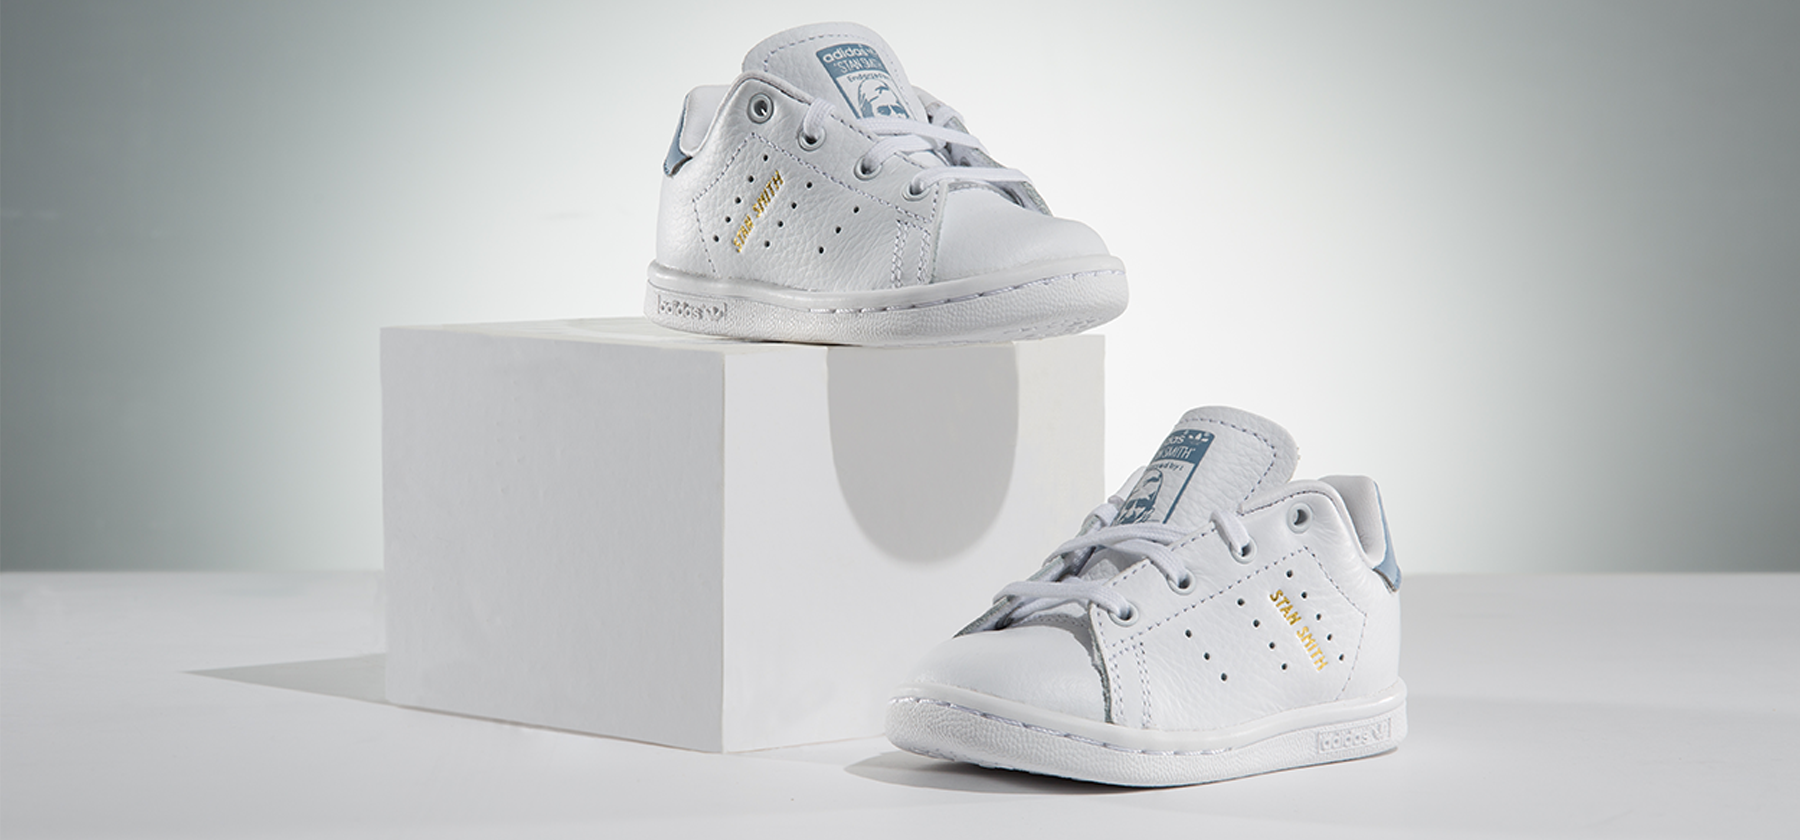 Stan Smith Baby Sneaker Still life